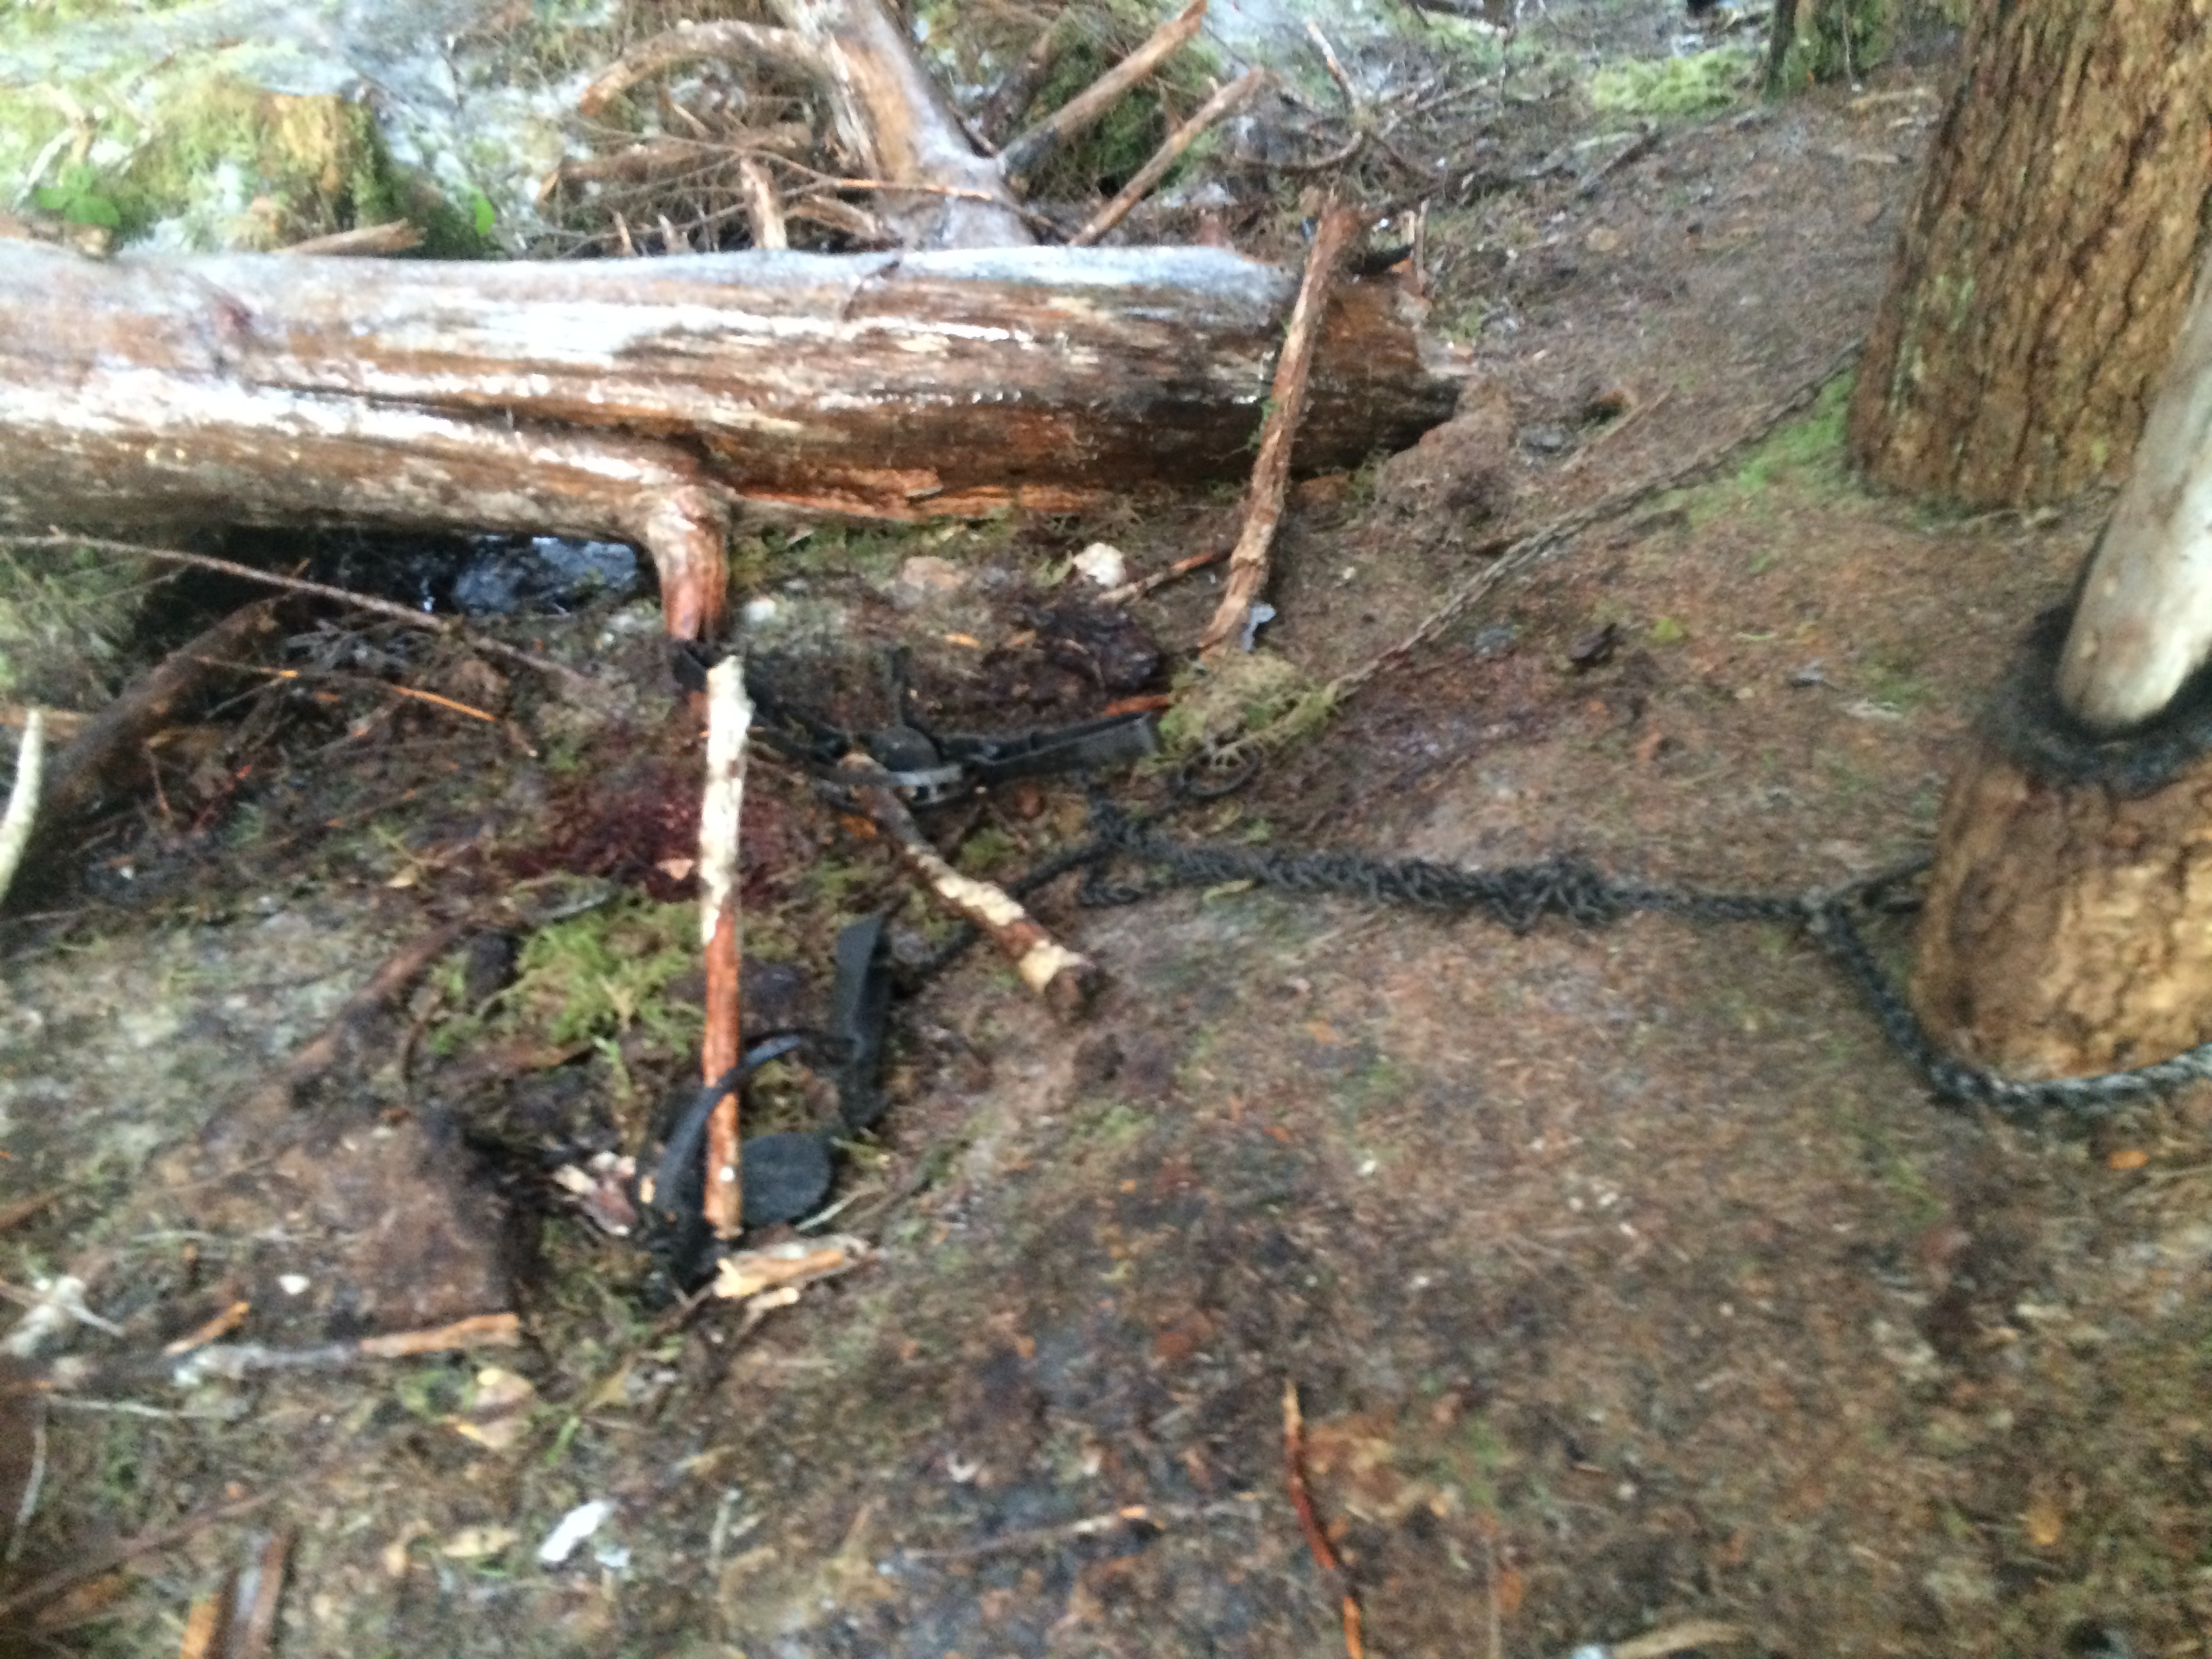 After getting the eagle out of the traps, this is how Adair left the scene. (Photo courtesy Kathleen Adair)